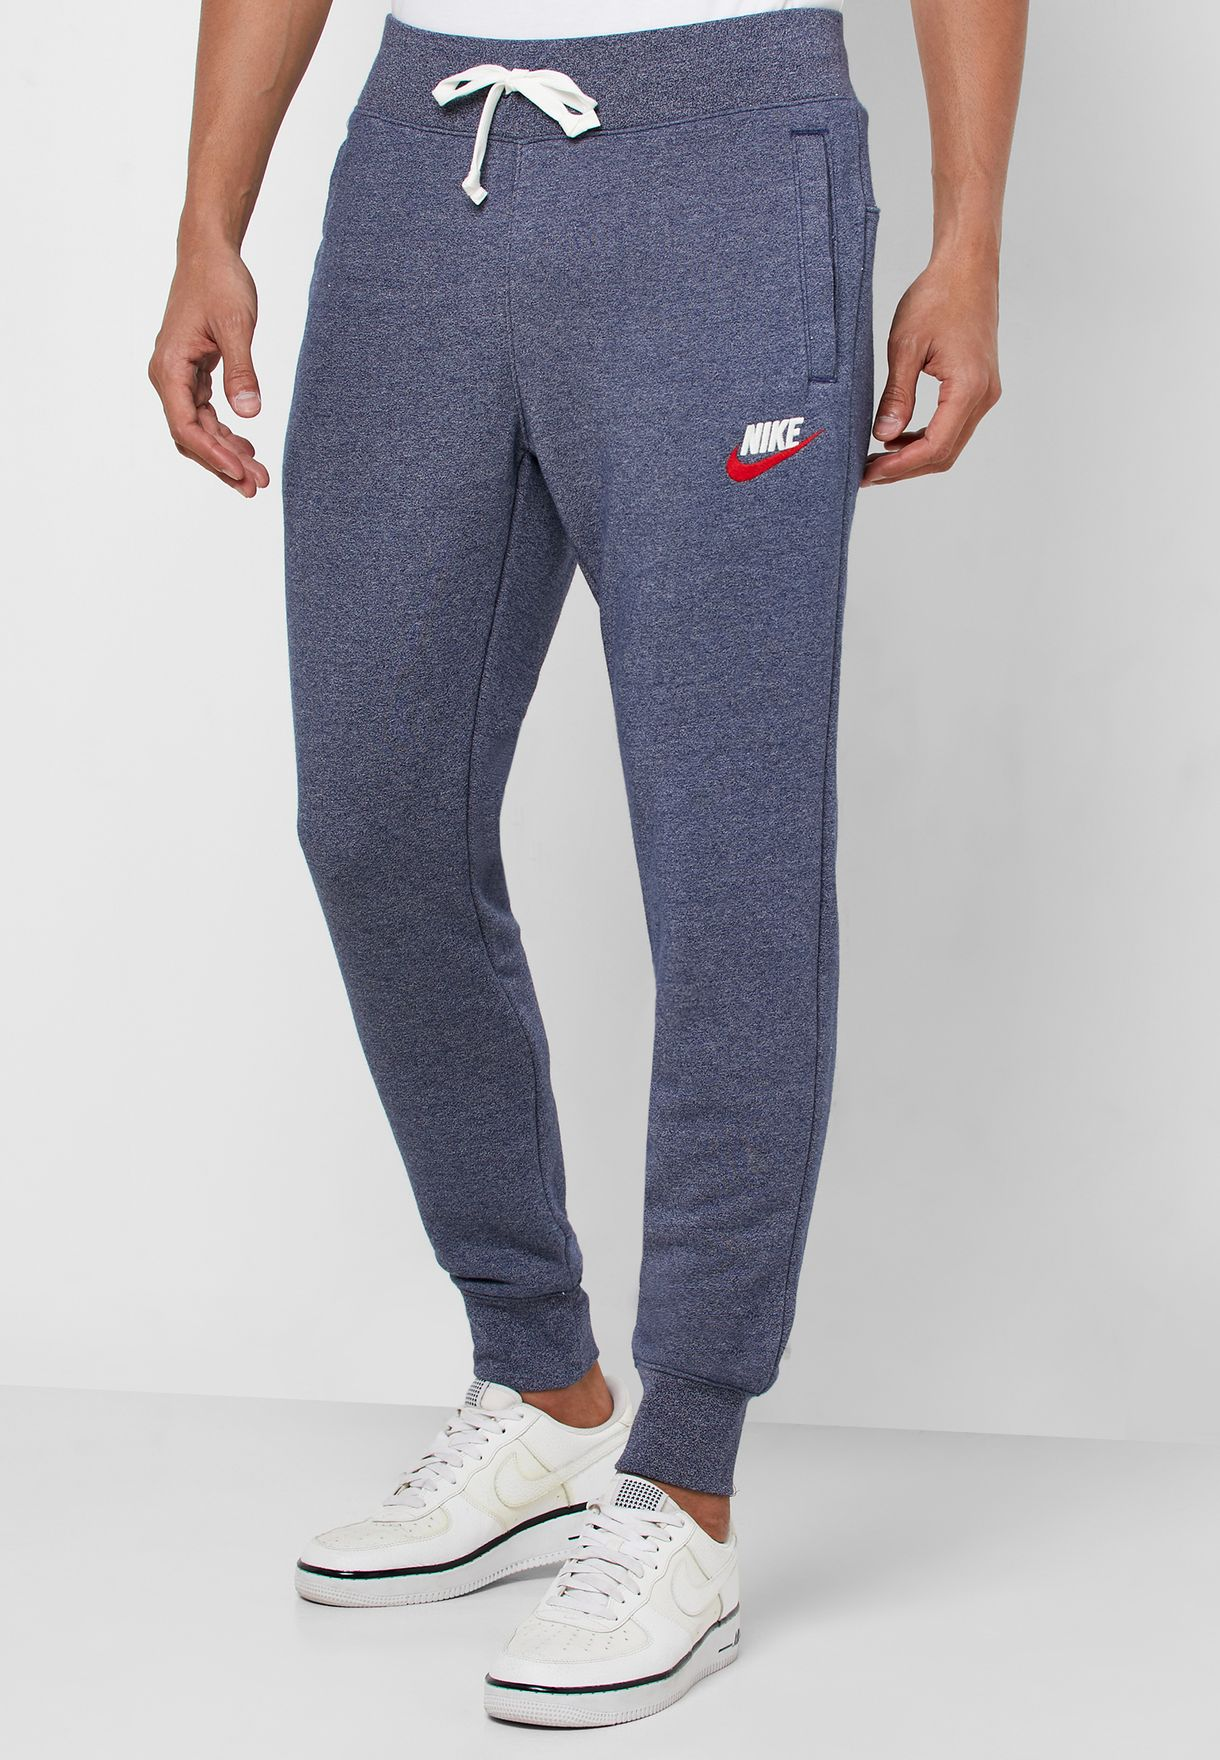 NSW Heritage Sweatpants